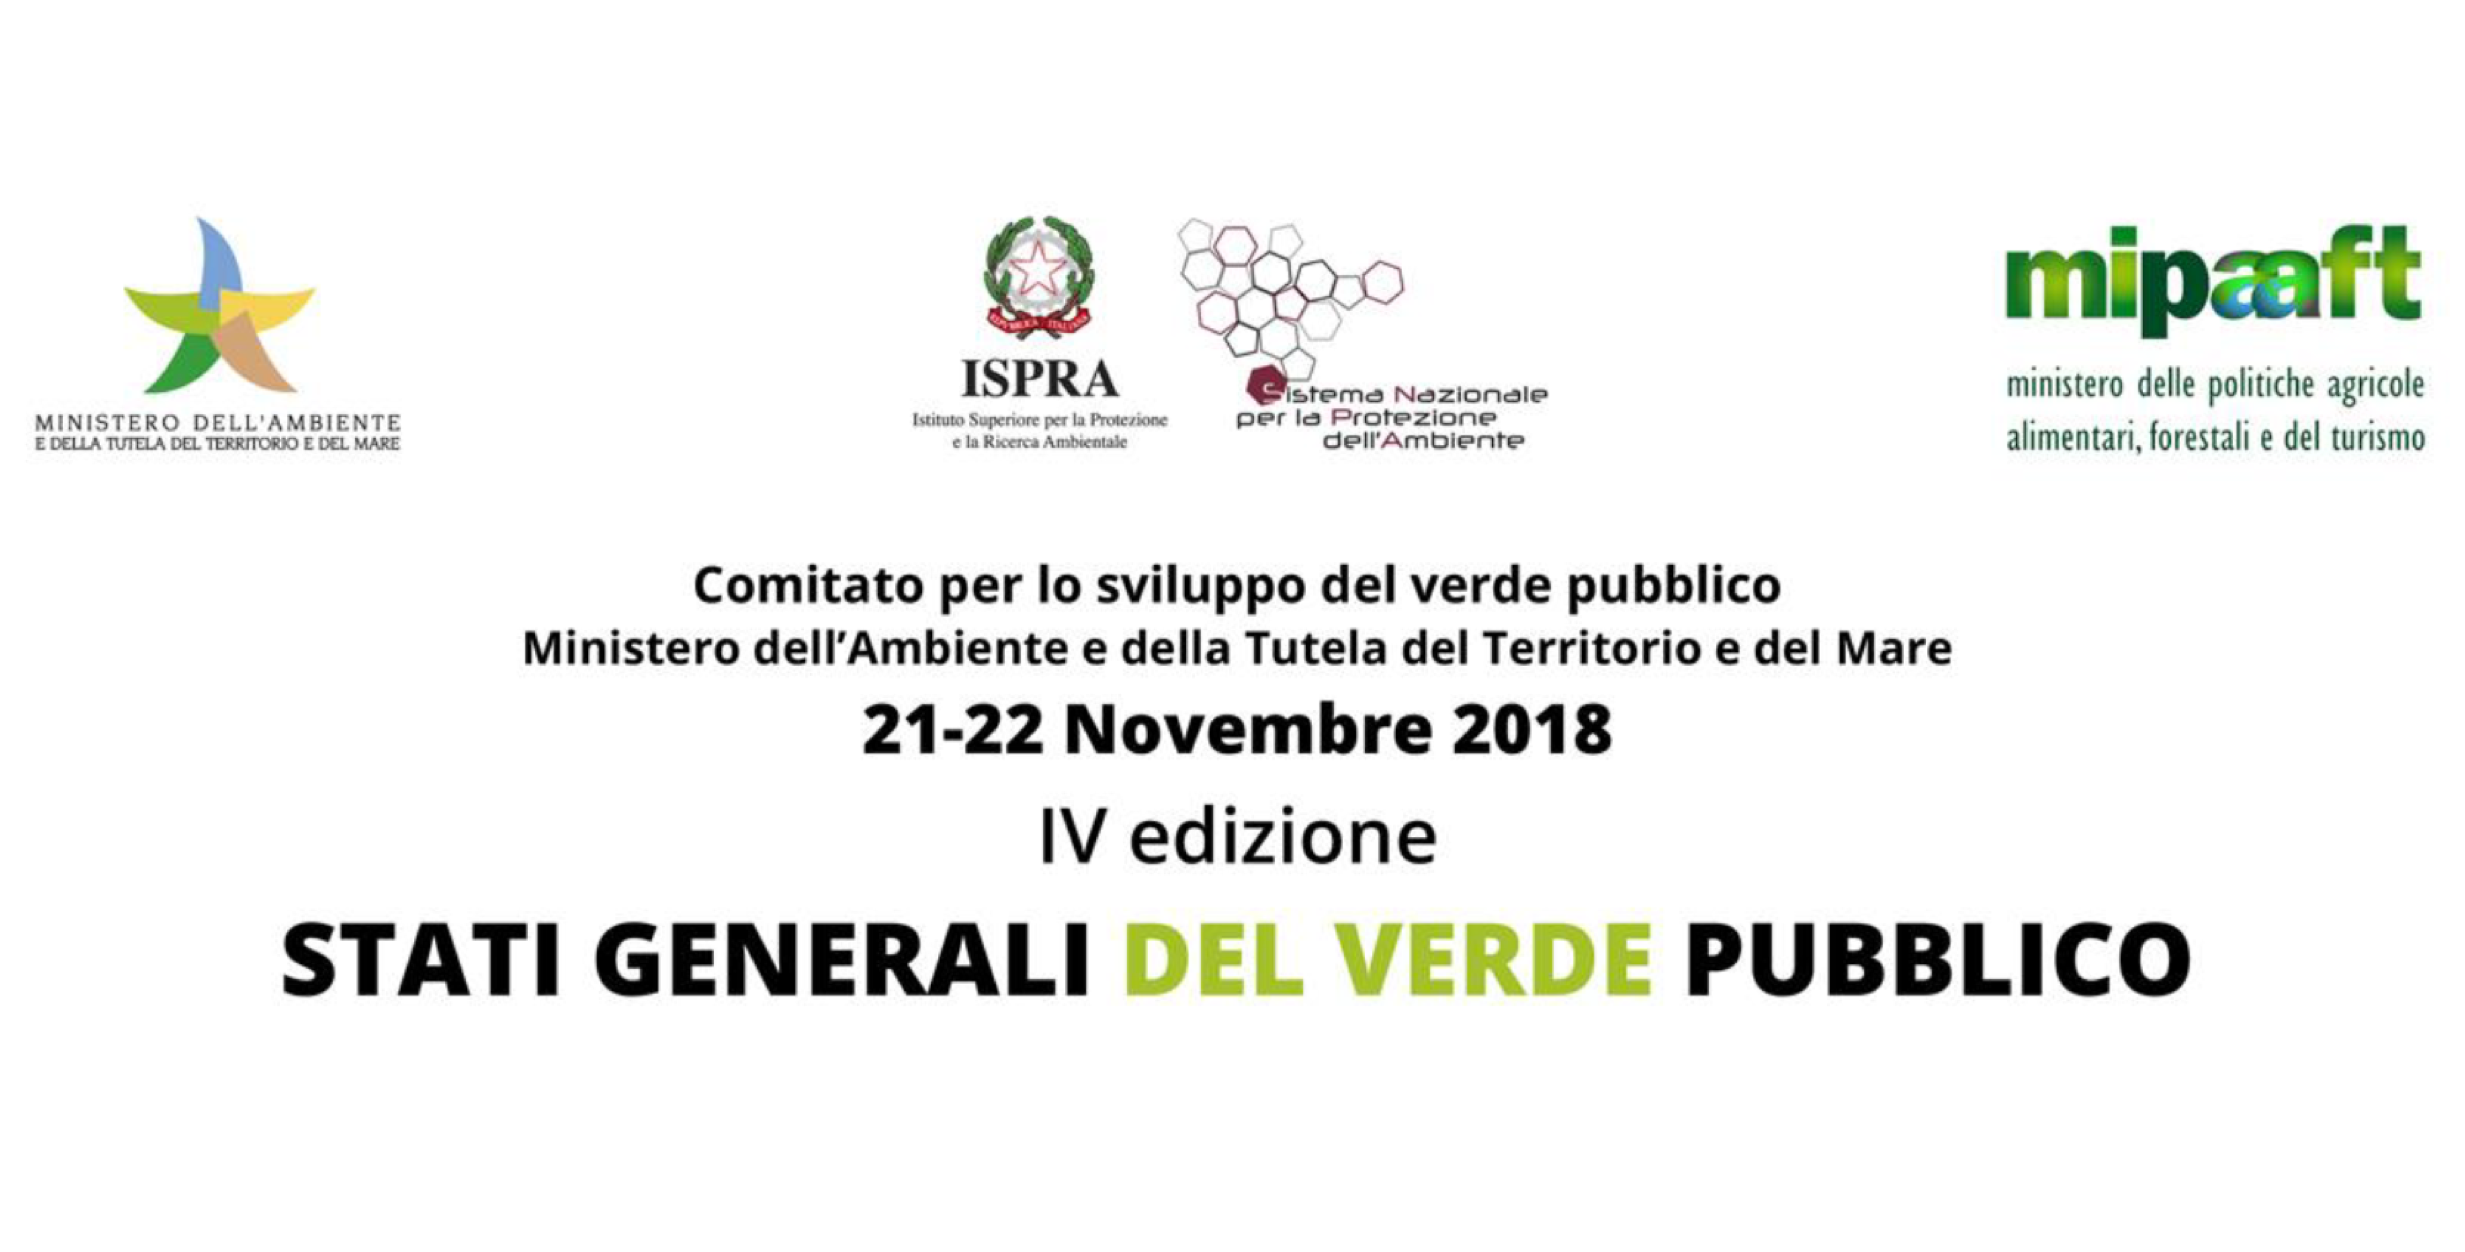 Stati Generali del Verde Pubblico 2018